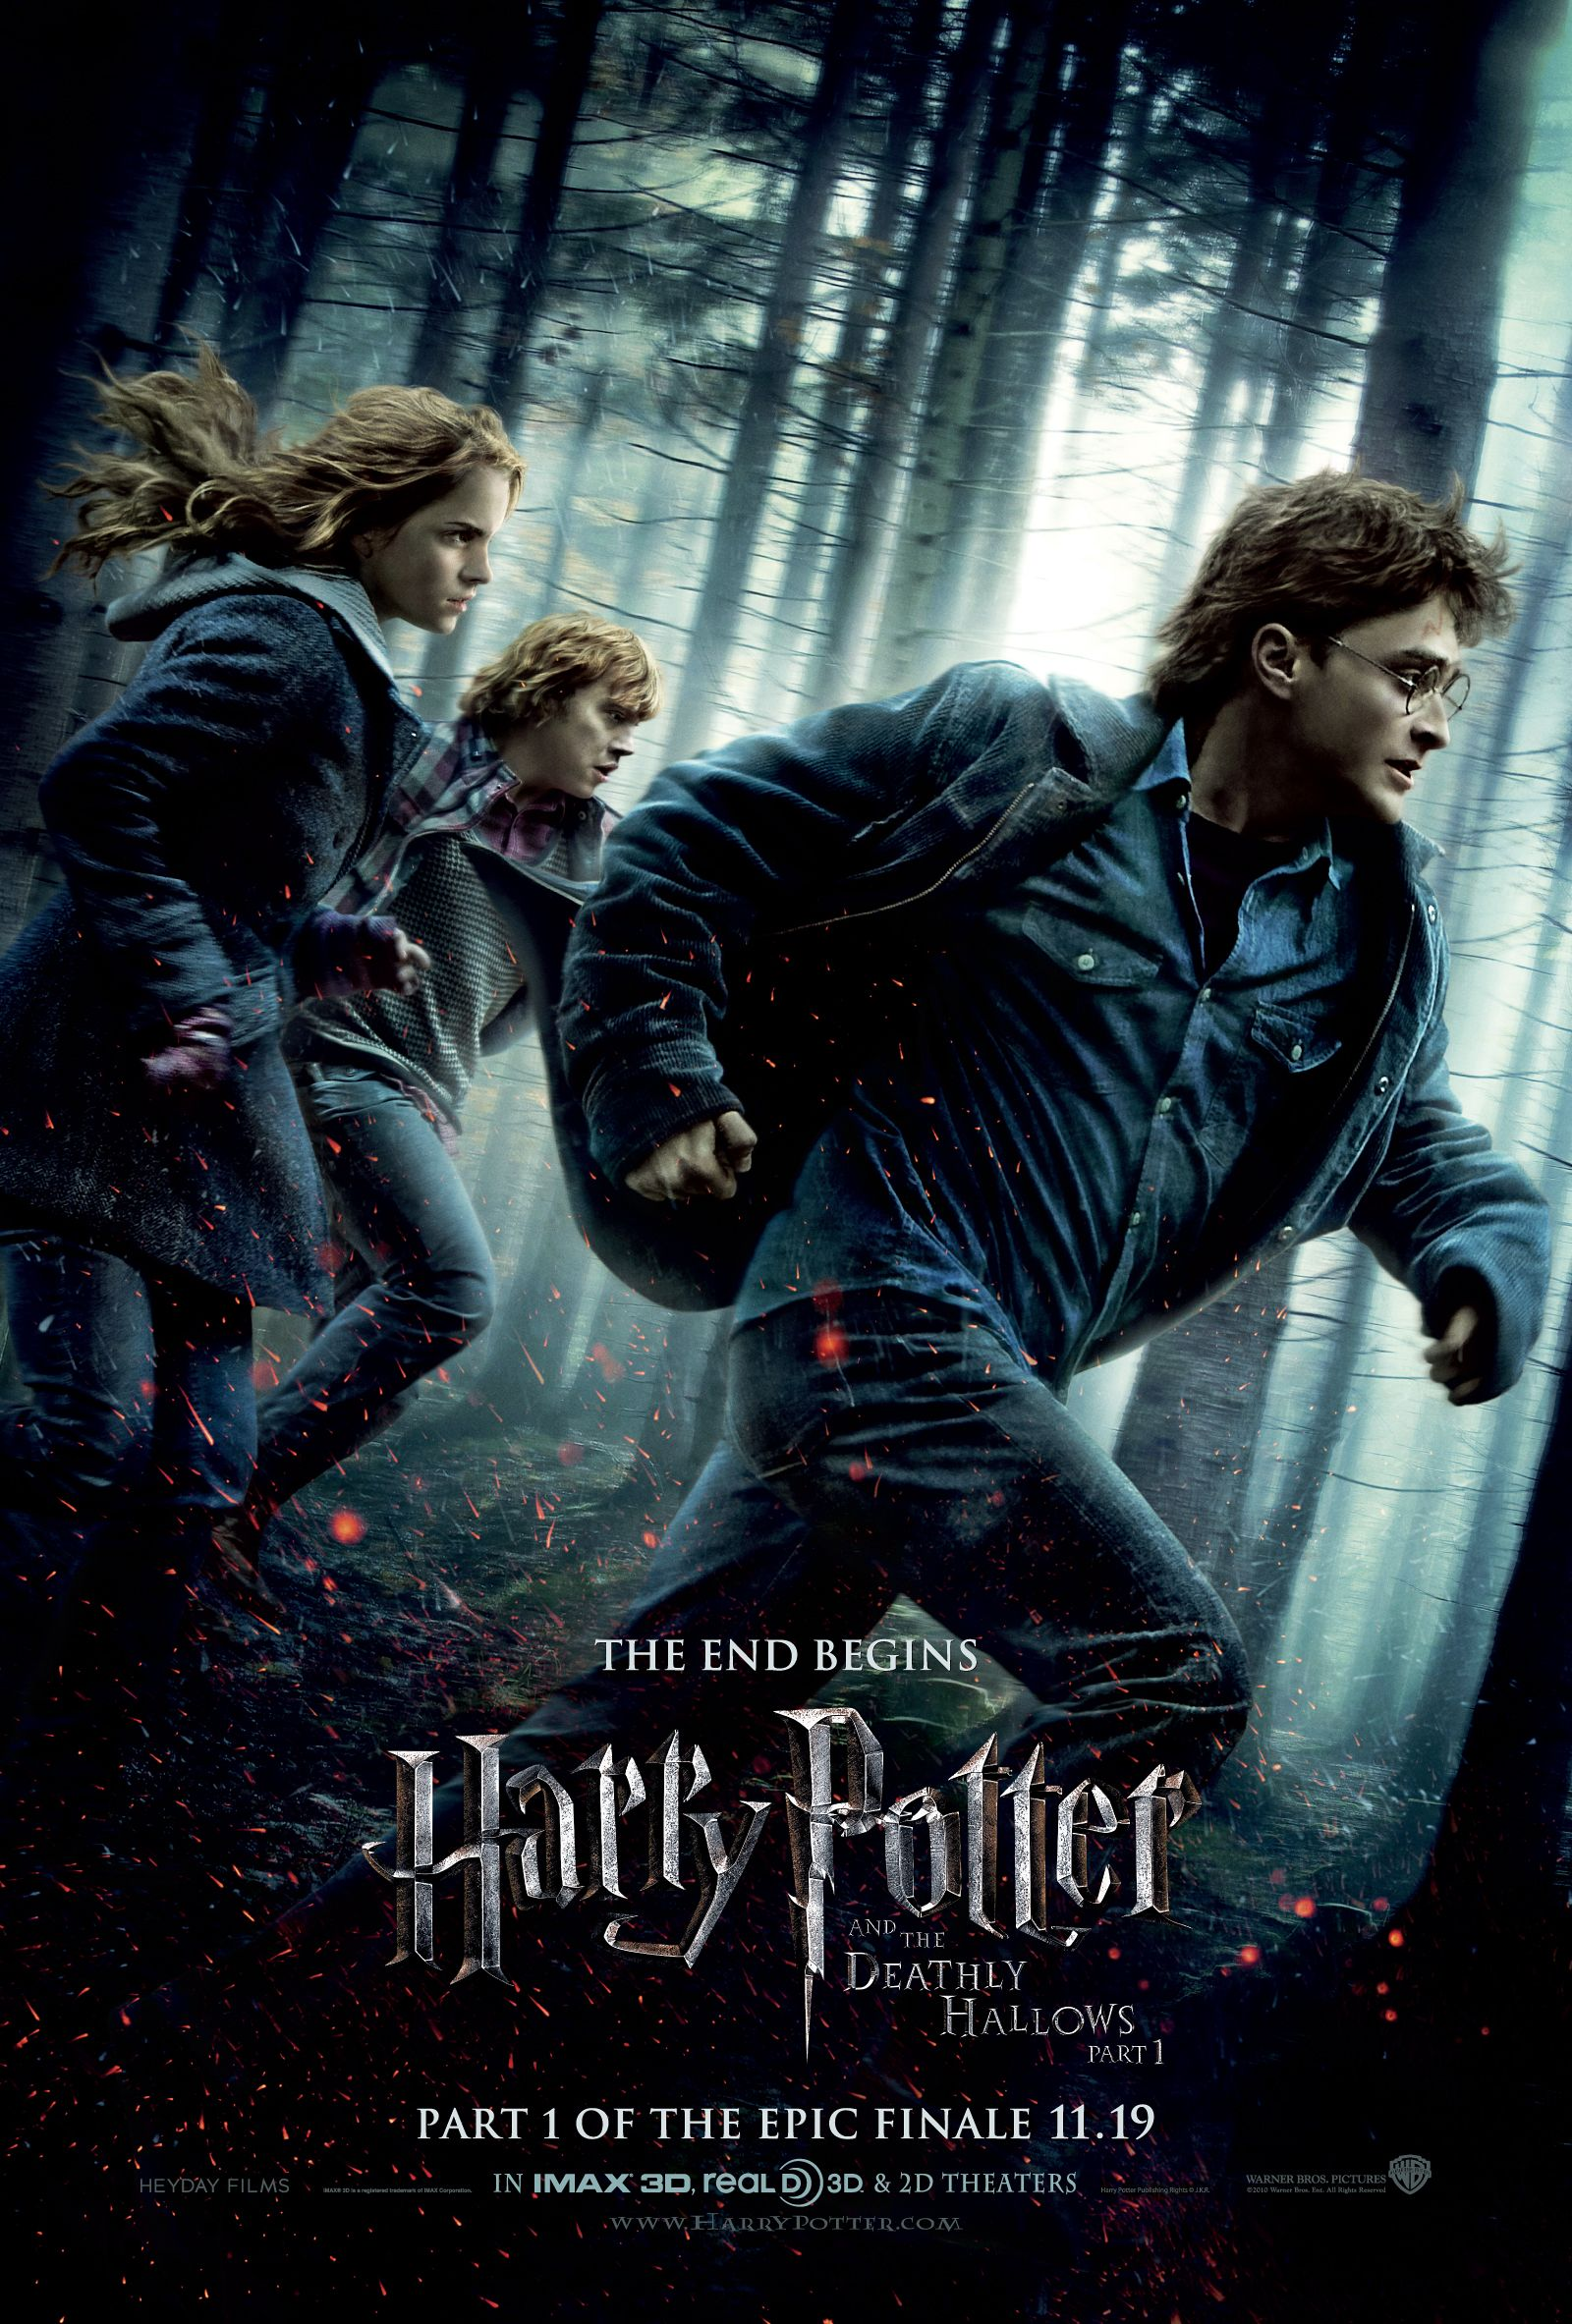 Harry Potter And The Deathly Hallows Part 1 Movie Poster Jpg 1600 2366 Pixels Deathly Hallows Harry Potter Film